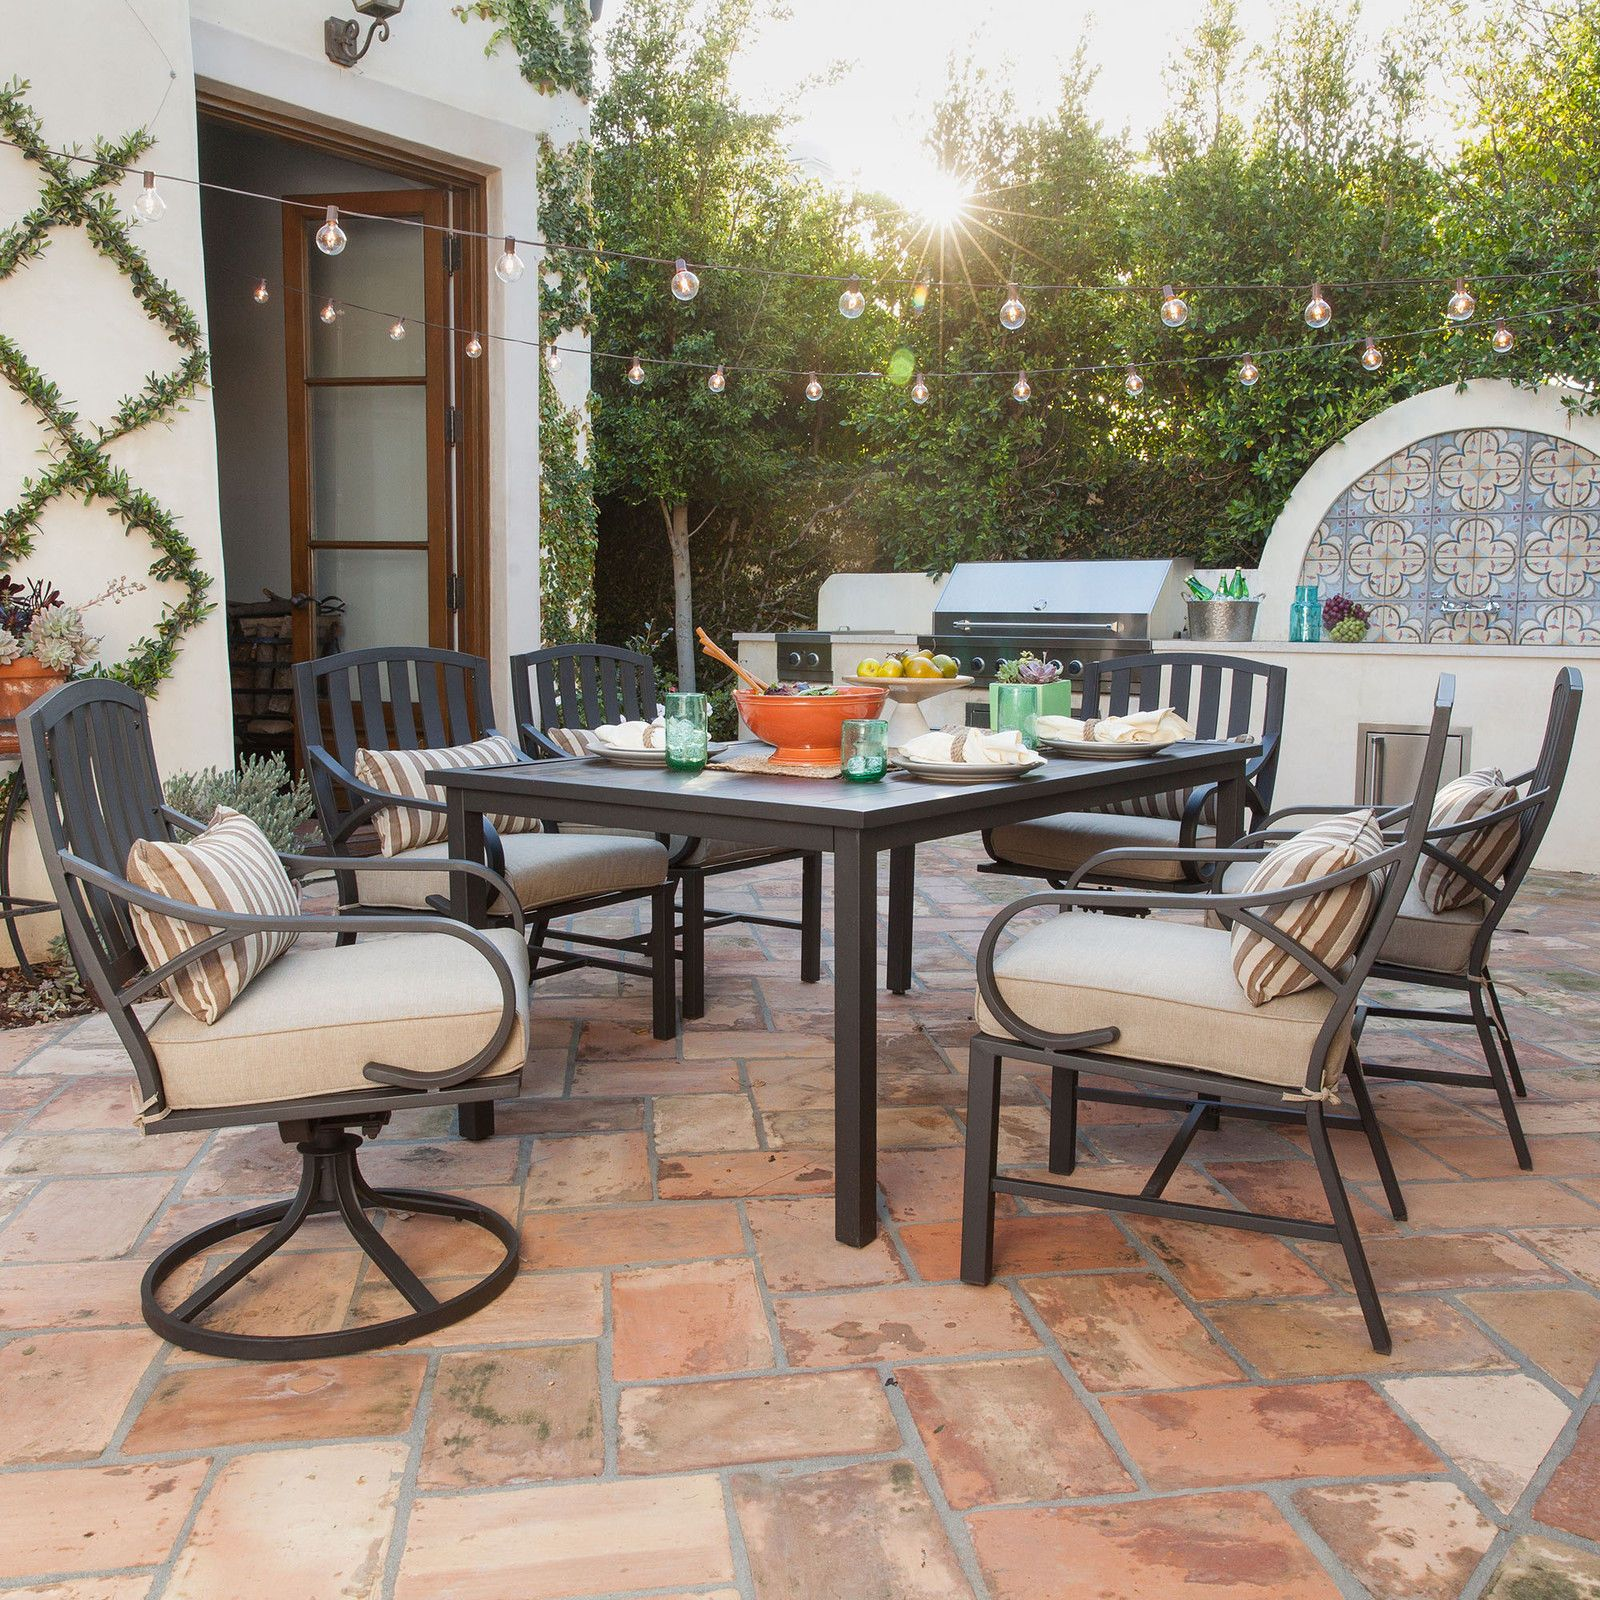 Patio Furniture Sets Clearance 7 piece Cushion Dining